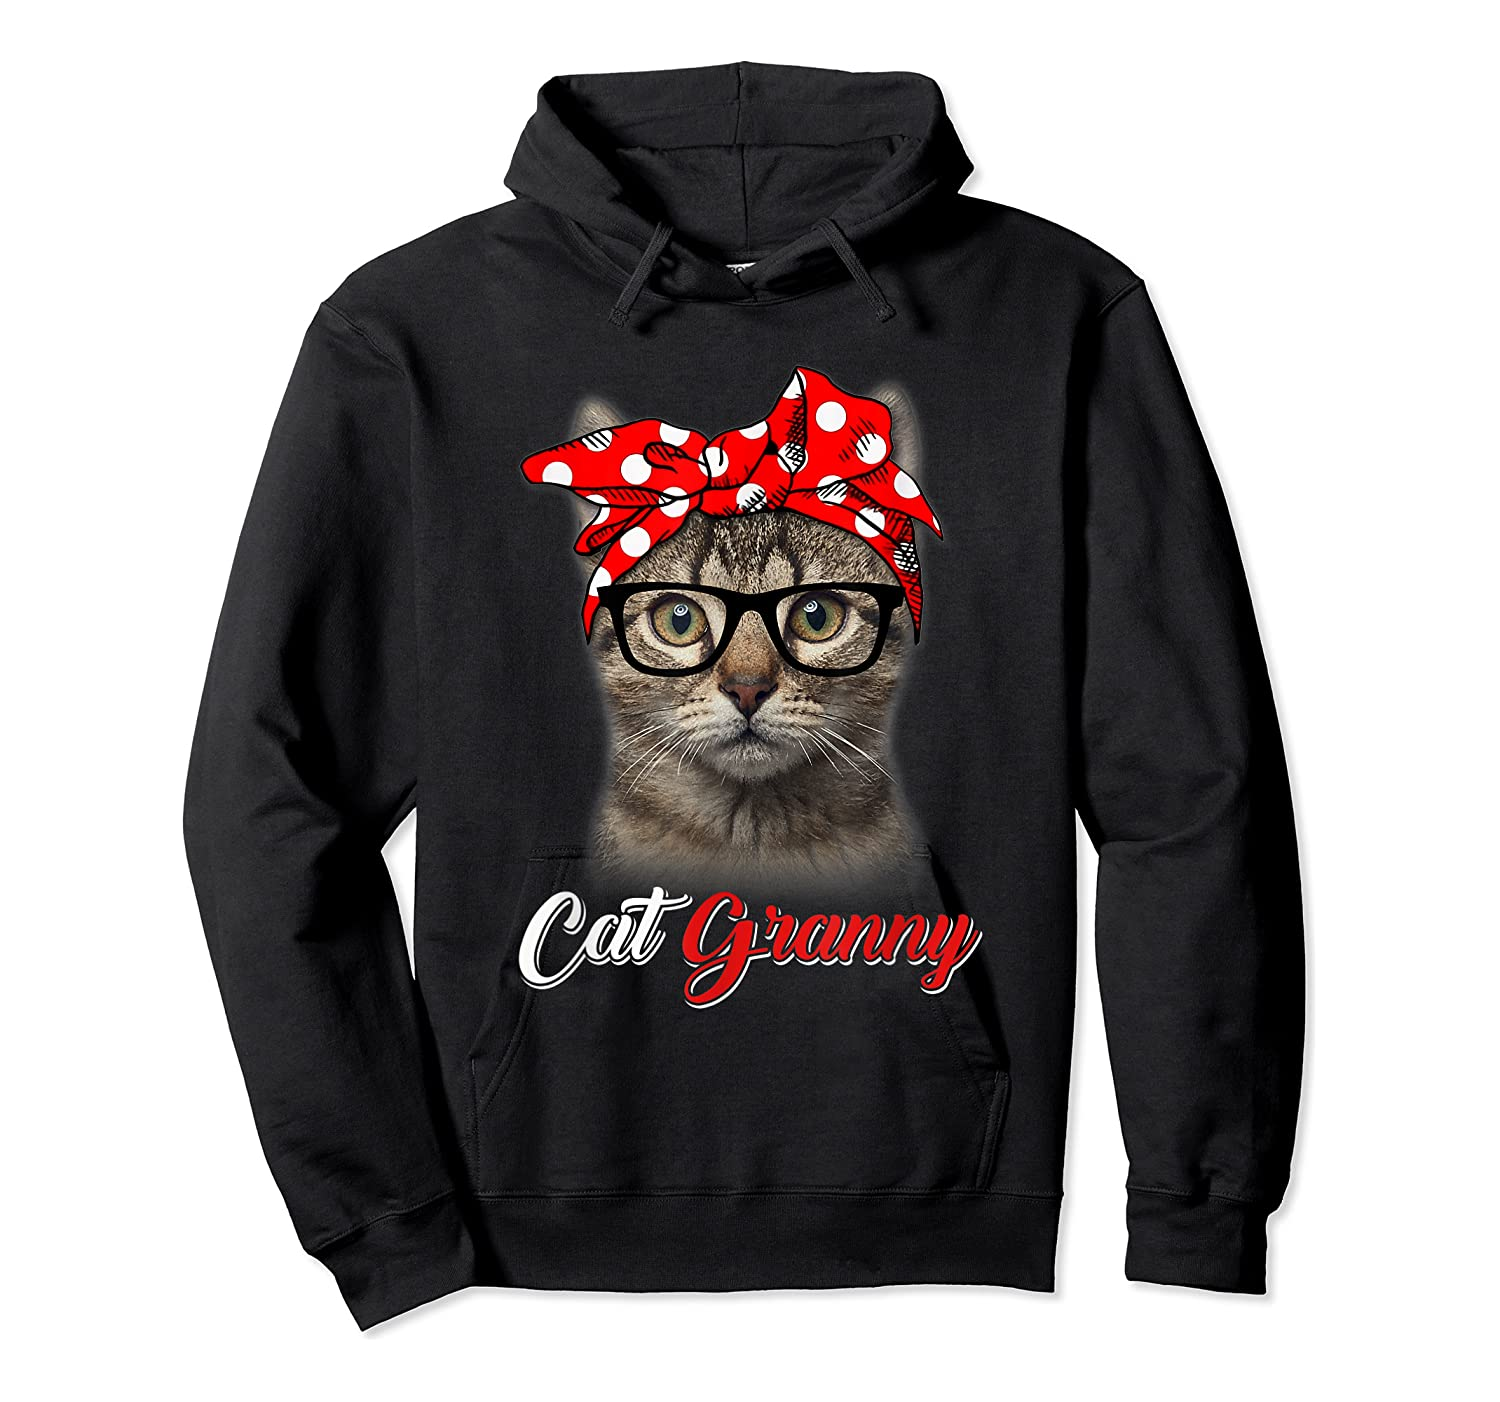 Funny Cat Granny Shirt For Cat Lovers-mothers Day Gift Unisex Pullover Hoodie